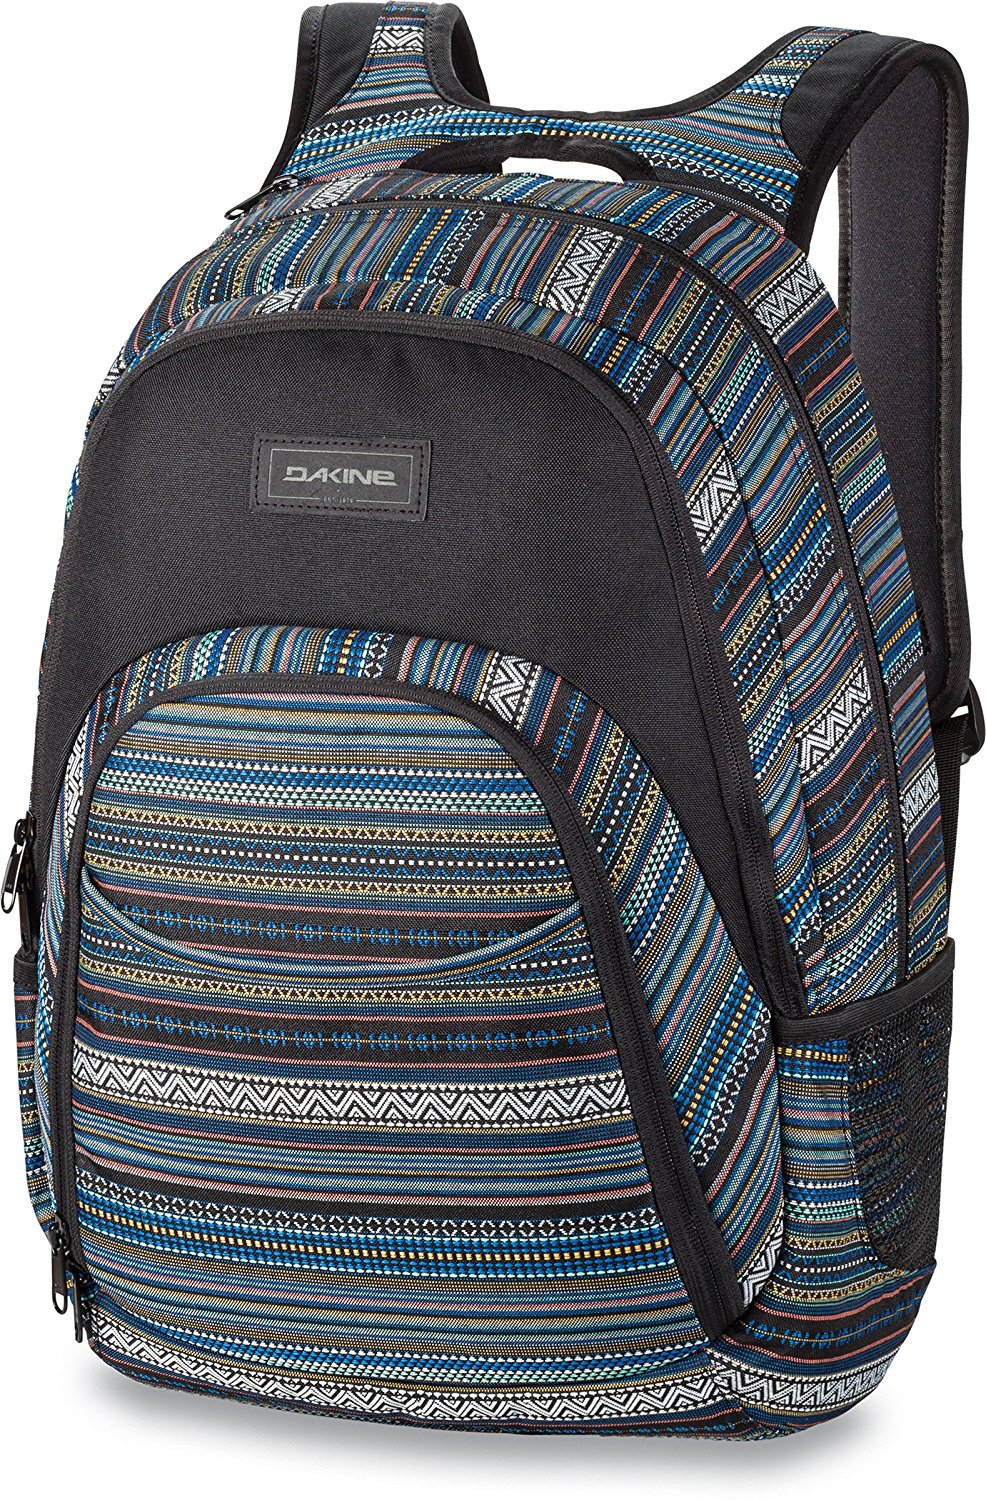 491603b1a4 Get Quotations · Dakine Girls Eve Back Pack